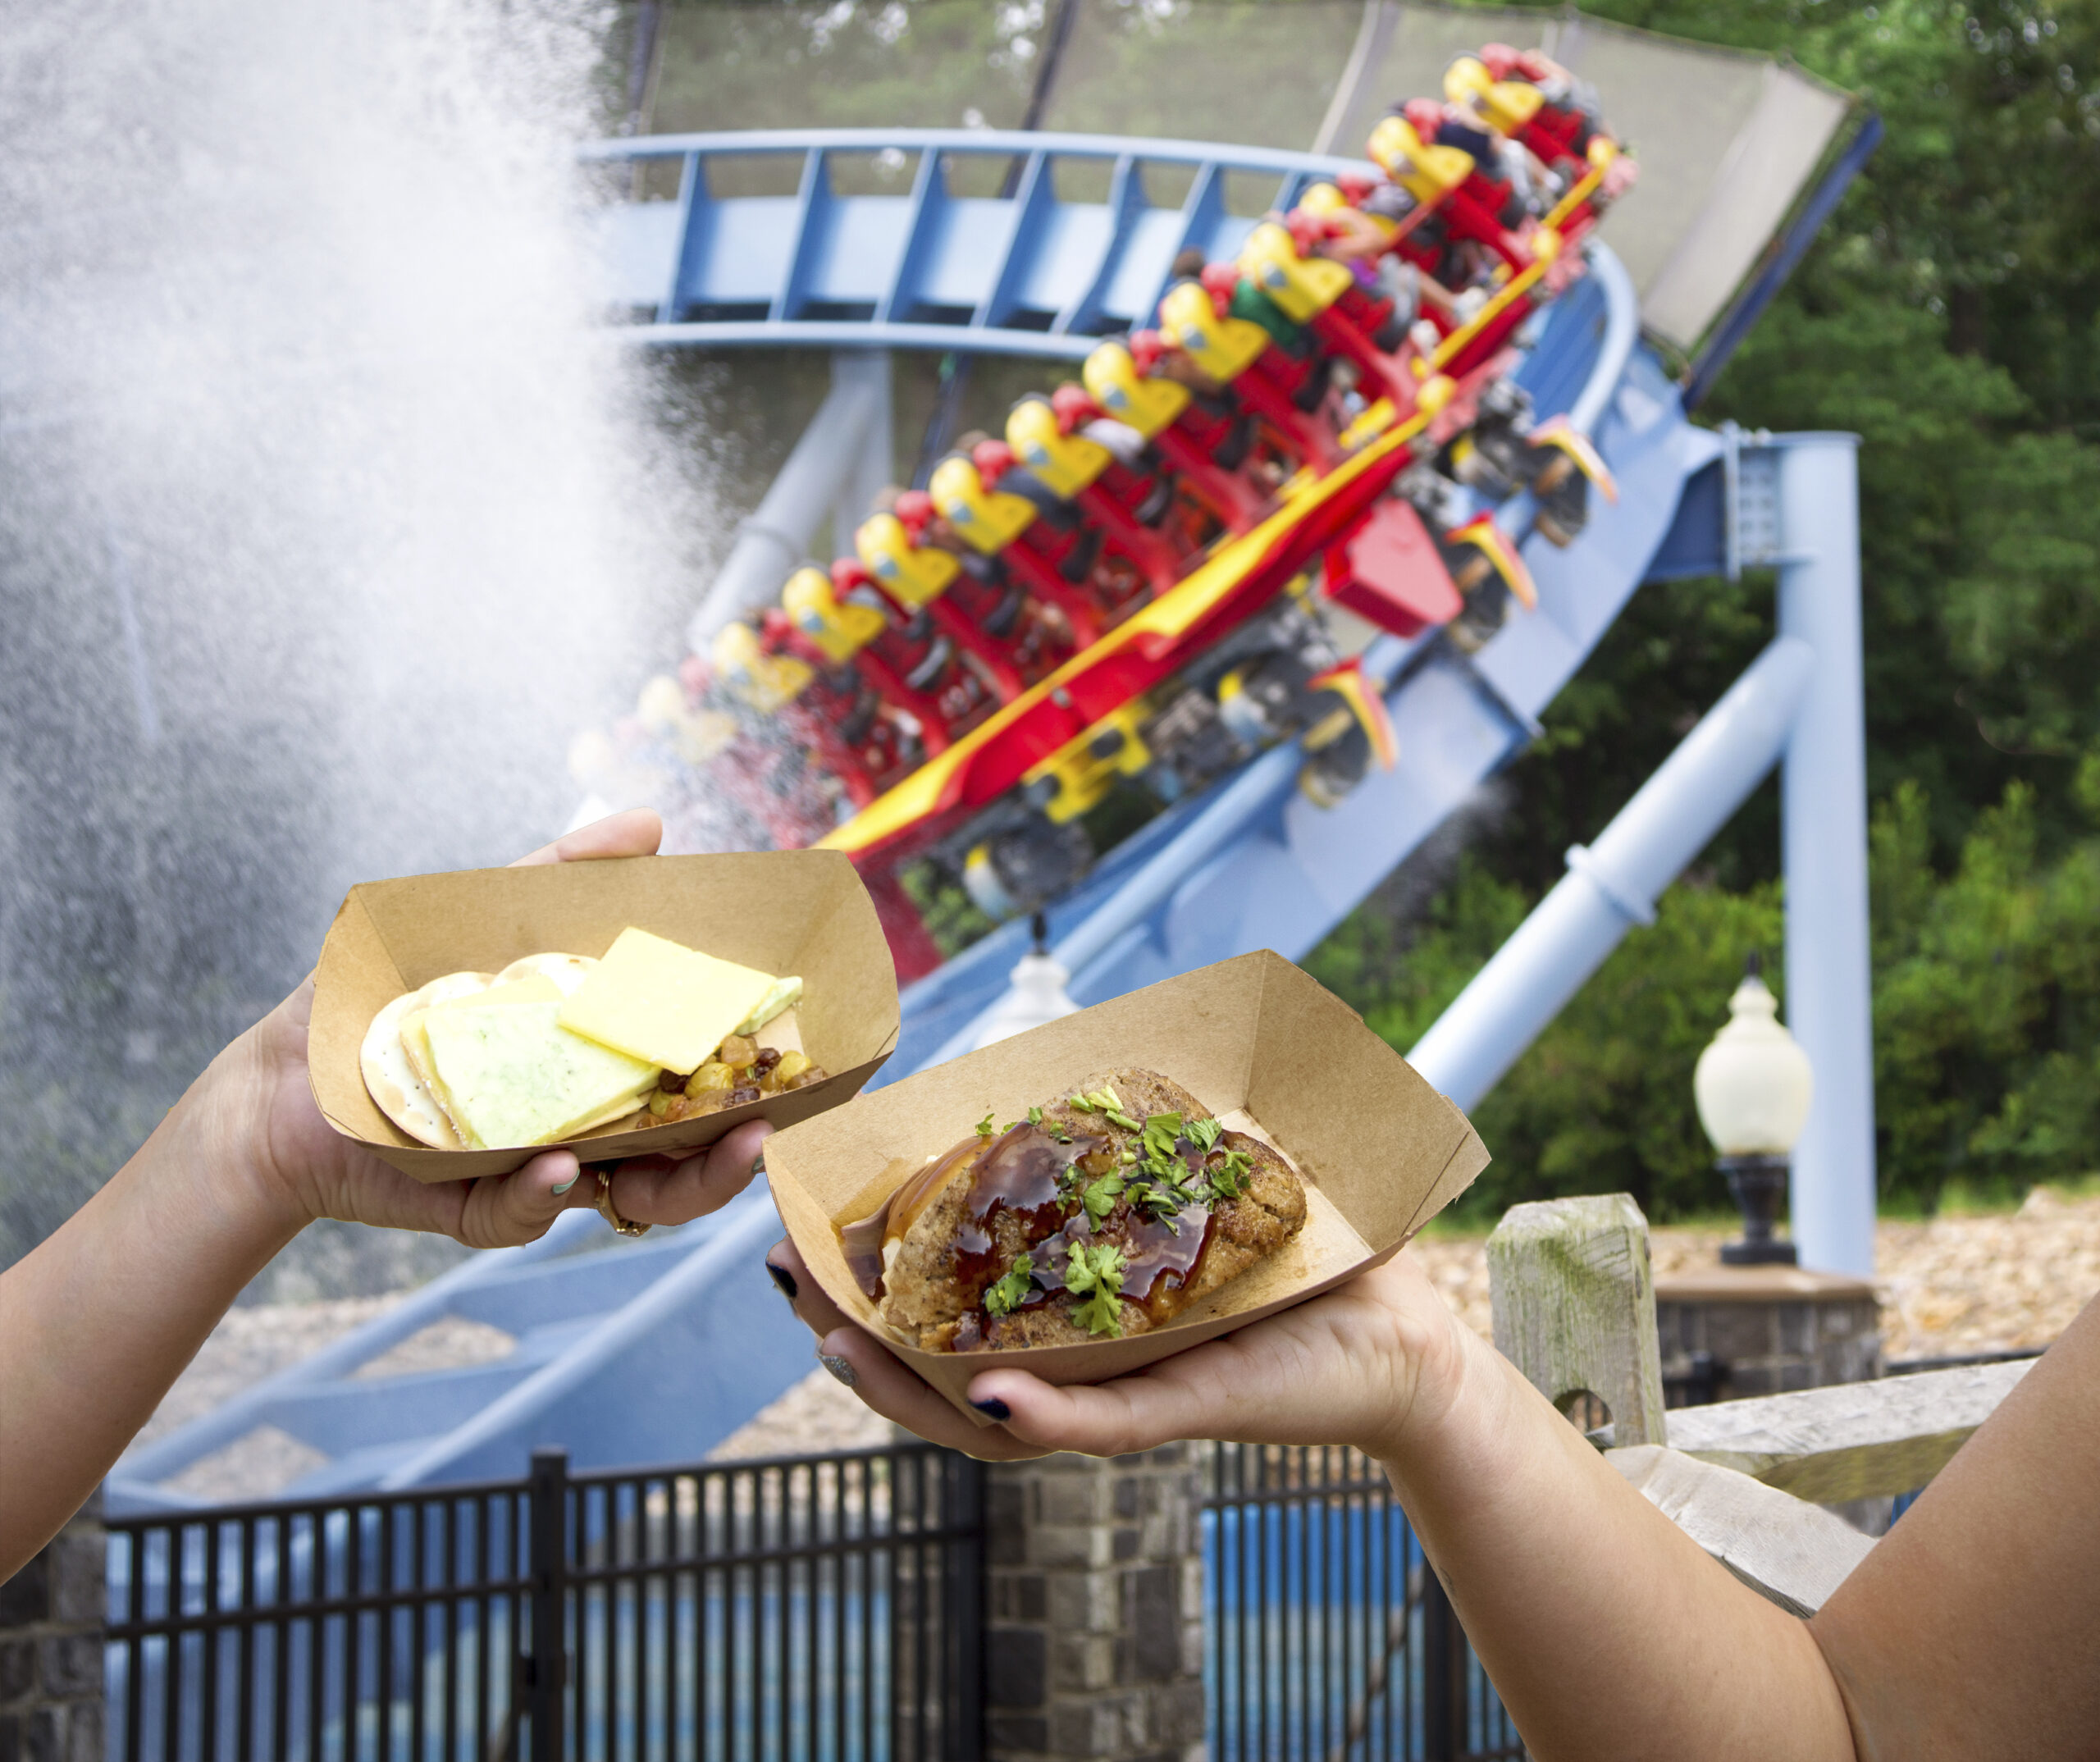 Experience Food From Around The World At Taste of Busch Gardens!